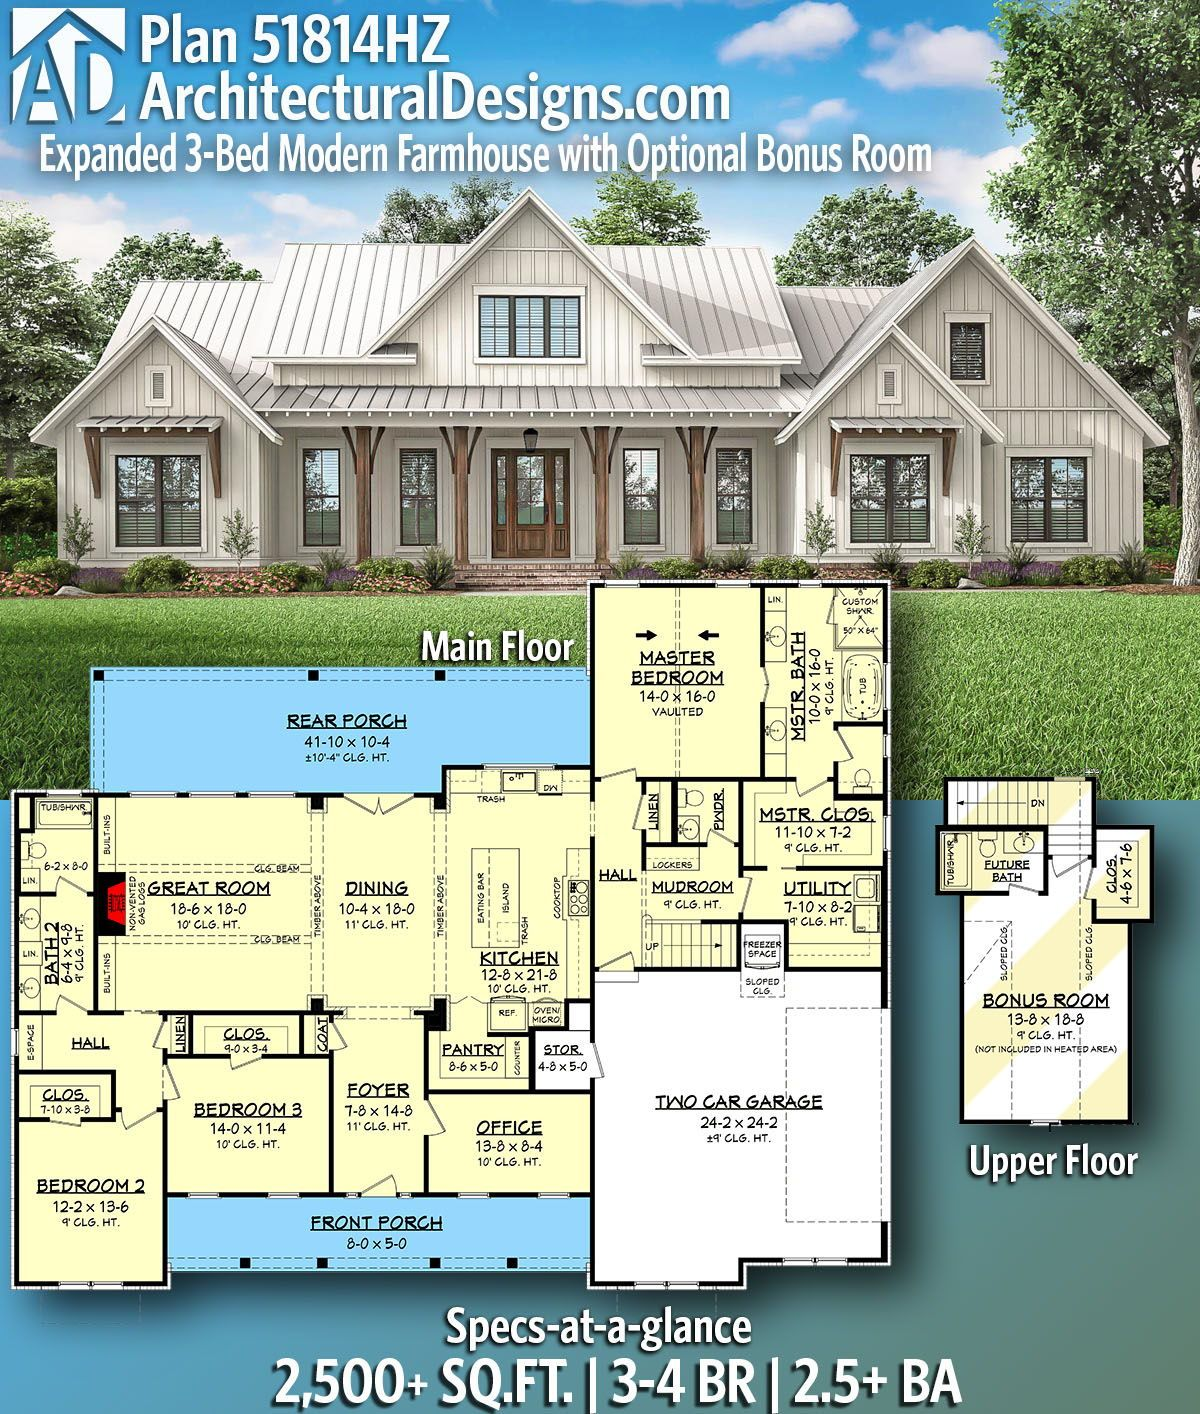 Plan 51814hz Expanded 3 Bed Modern Farmhouse With Optional Bonus Room Modern Farmhouse Plans House Plans Farmhouse New House Plans